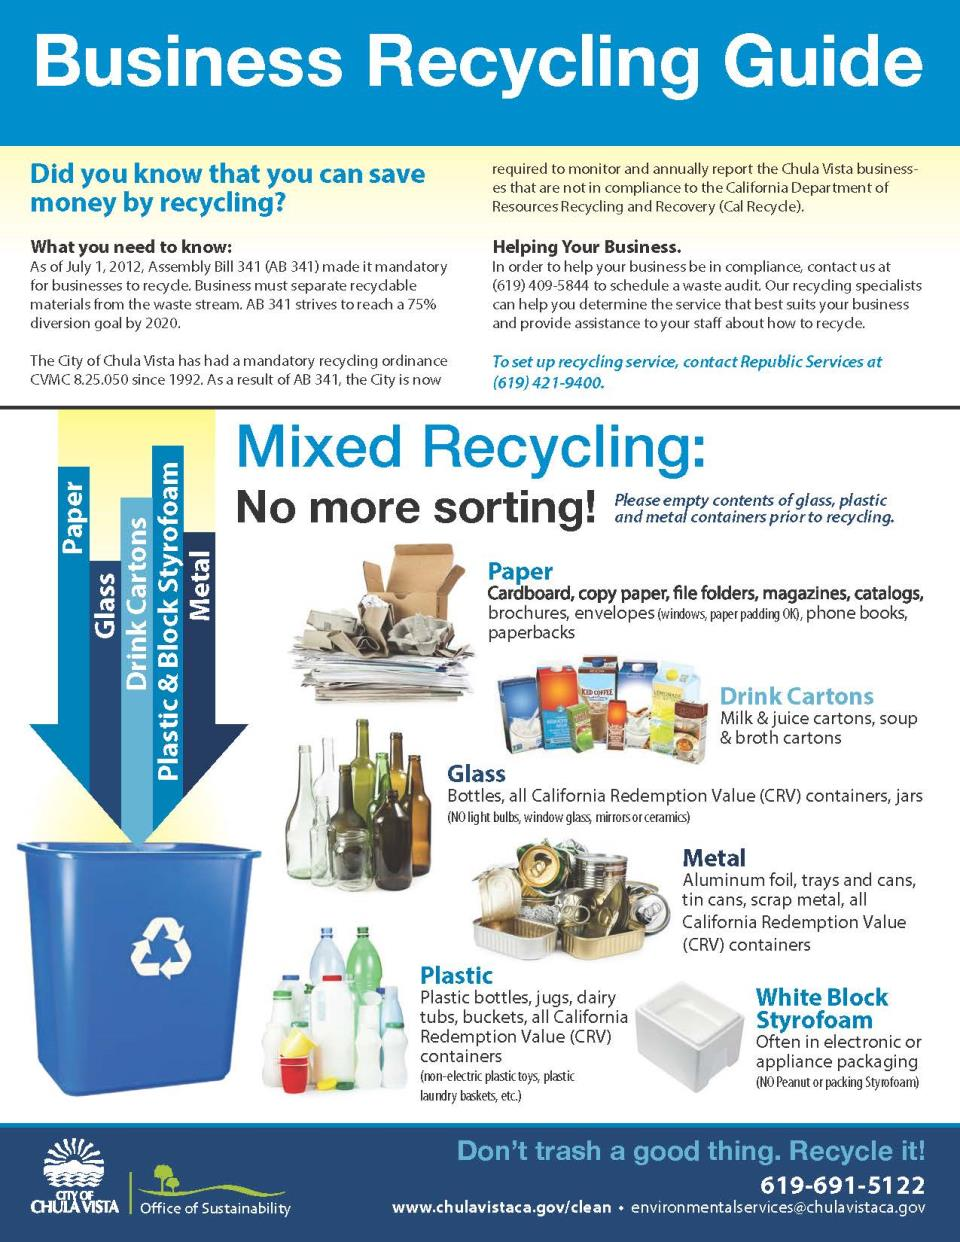 BusinessRecycling guide